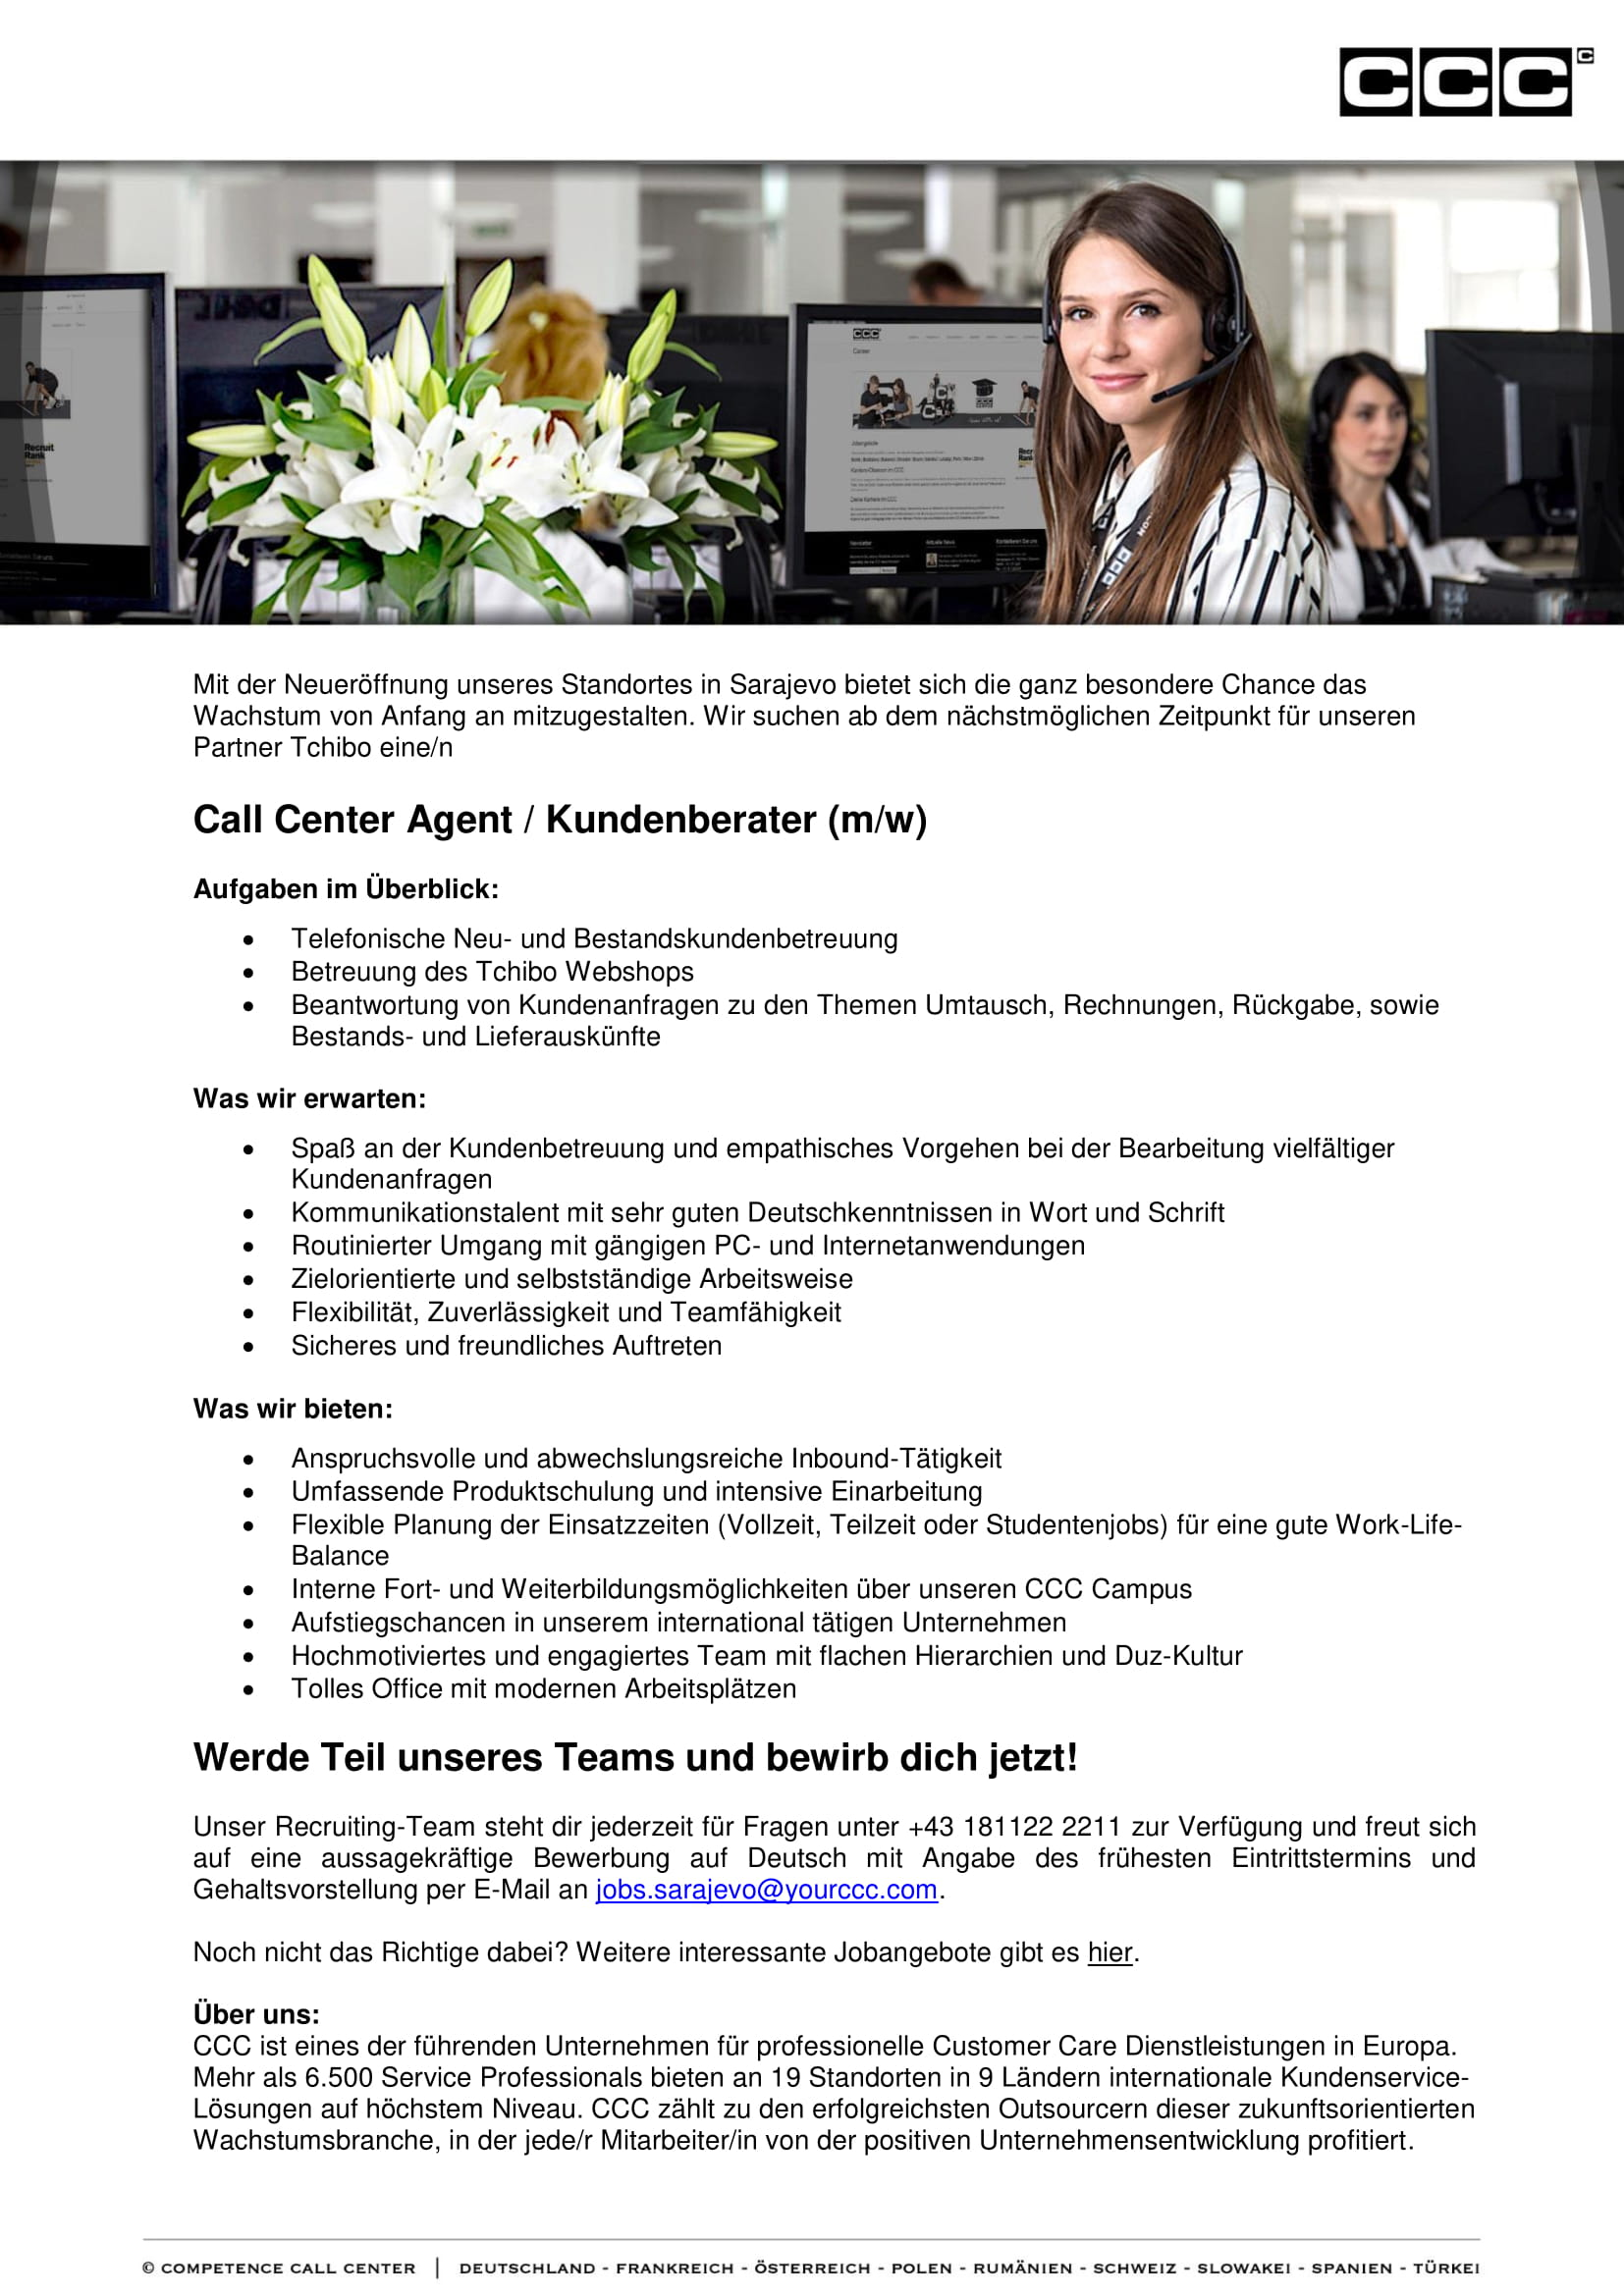 Call Center Agent / Kundenberater (m/w)